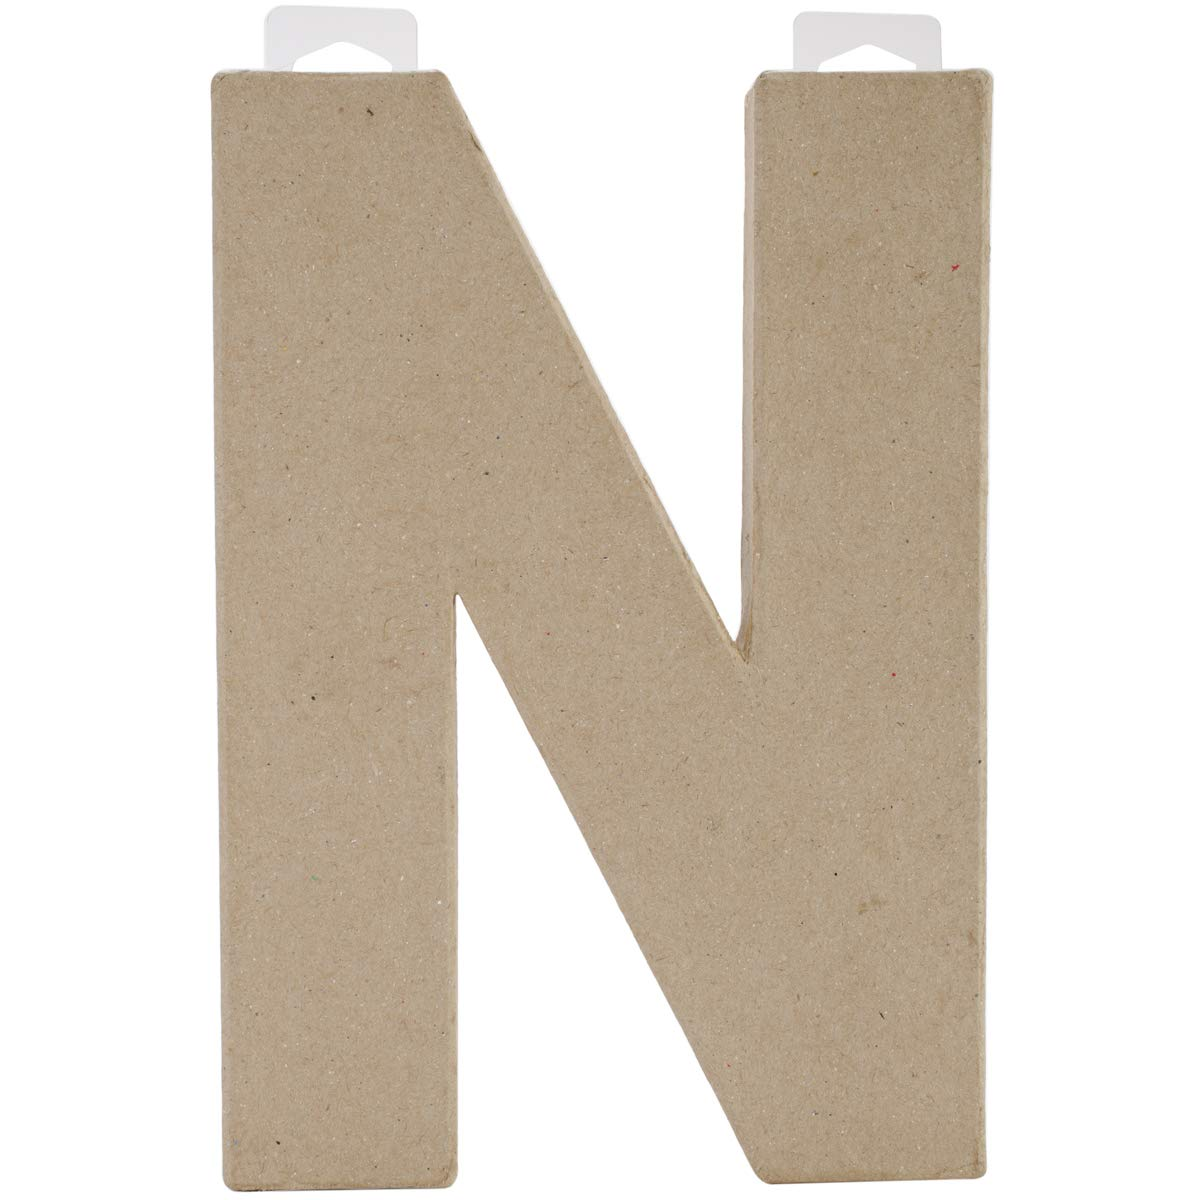 Darice Paper Mache Letter N 8 X 5.5 Inches (12 Pack)